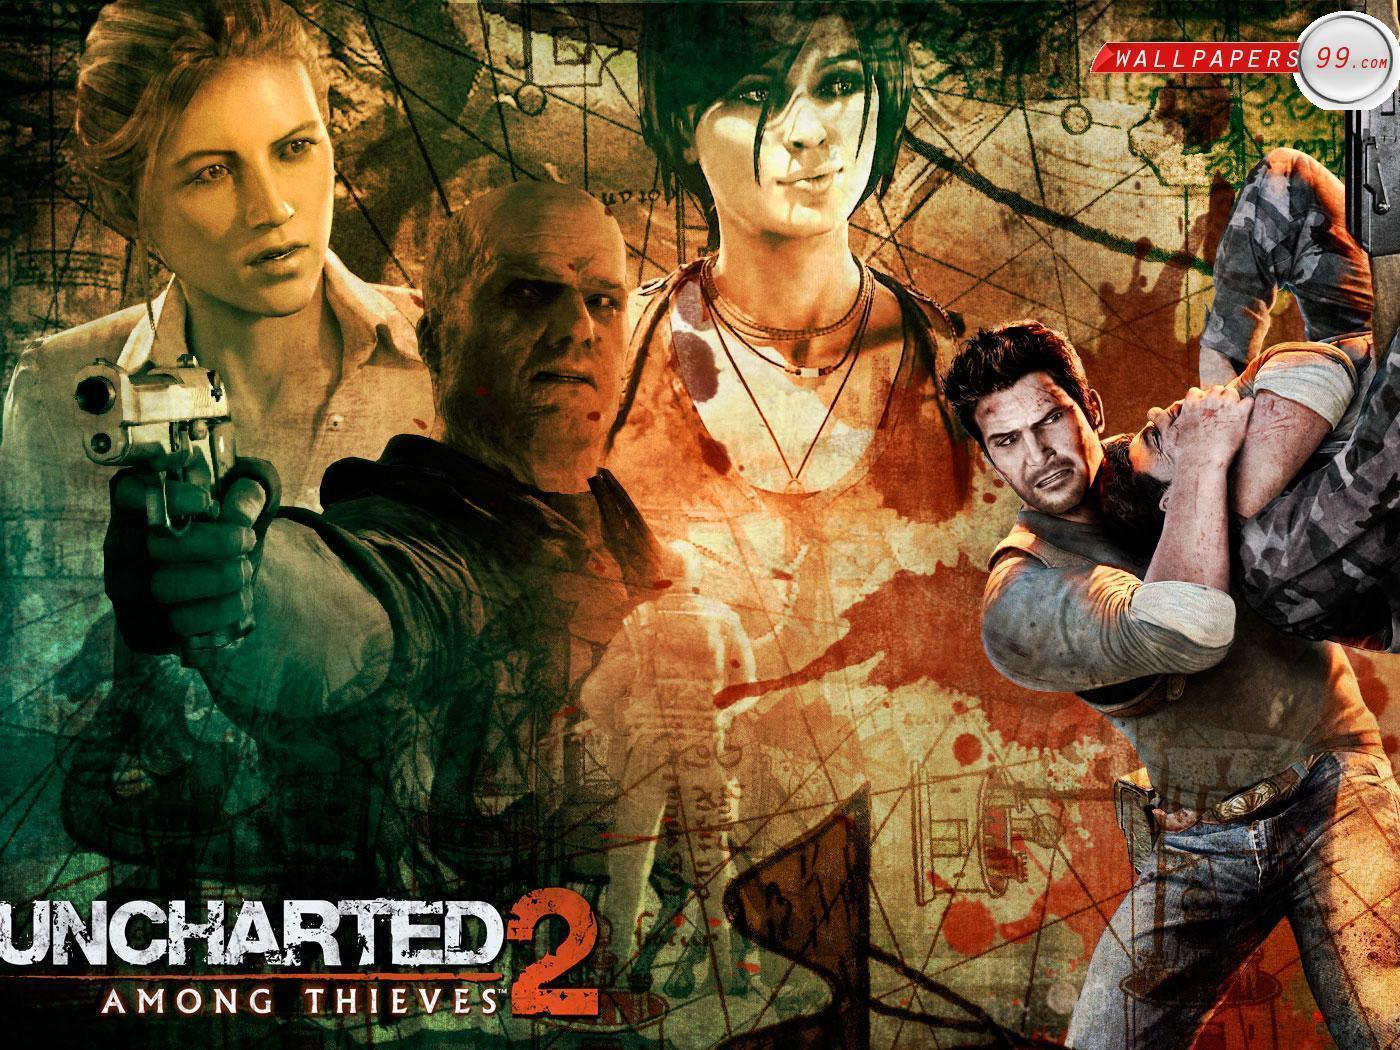 Free Uncharted 2 Among Thieves Wallpapers Photos Pictures Image